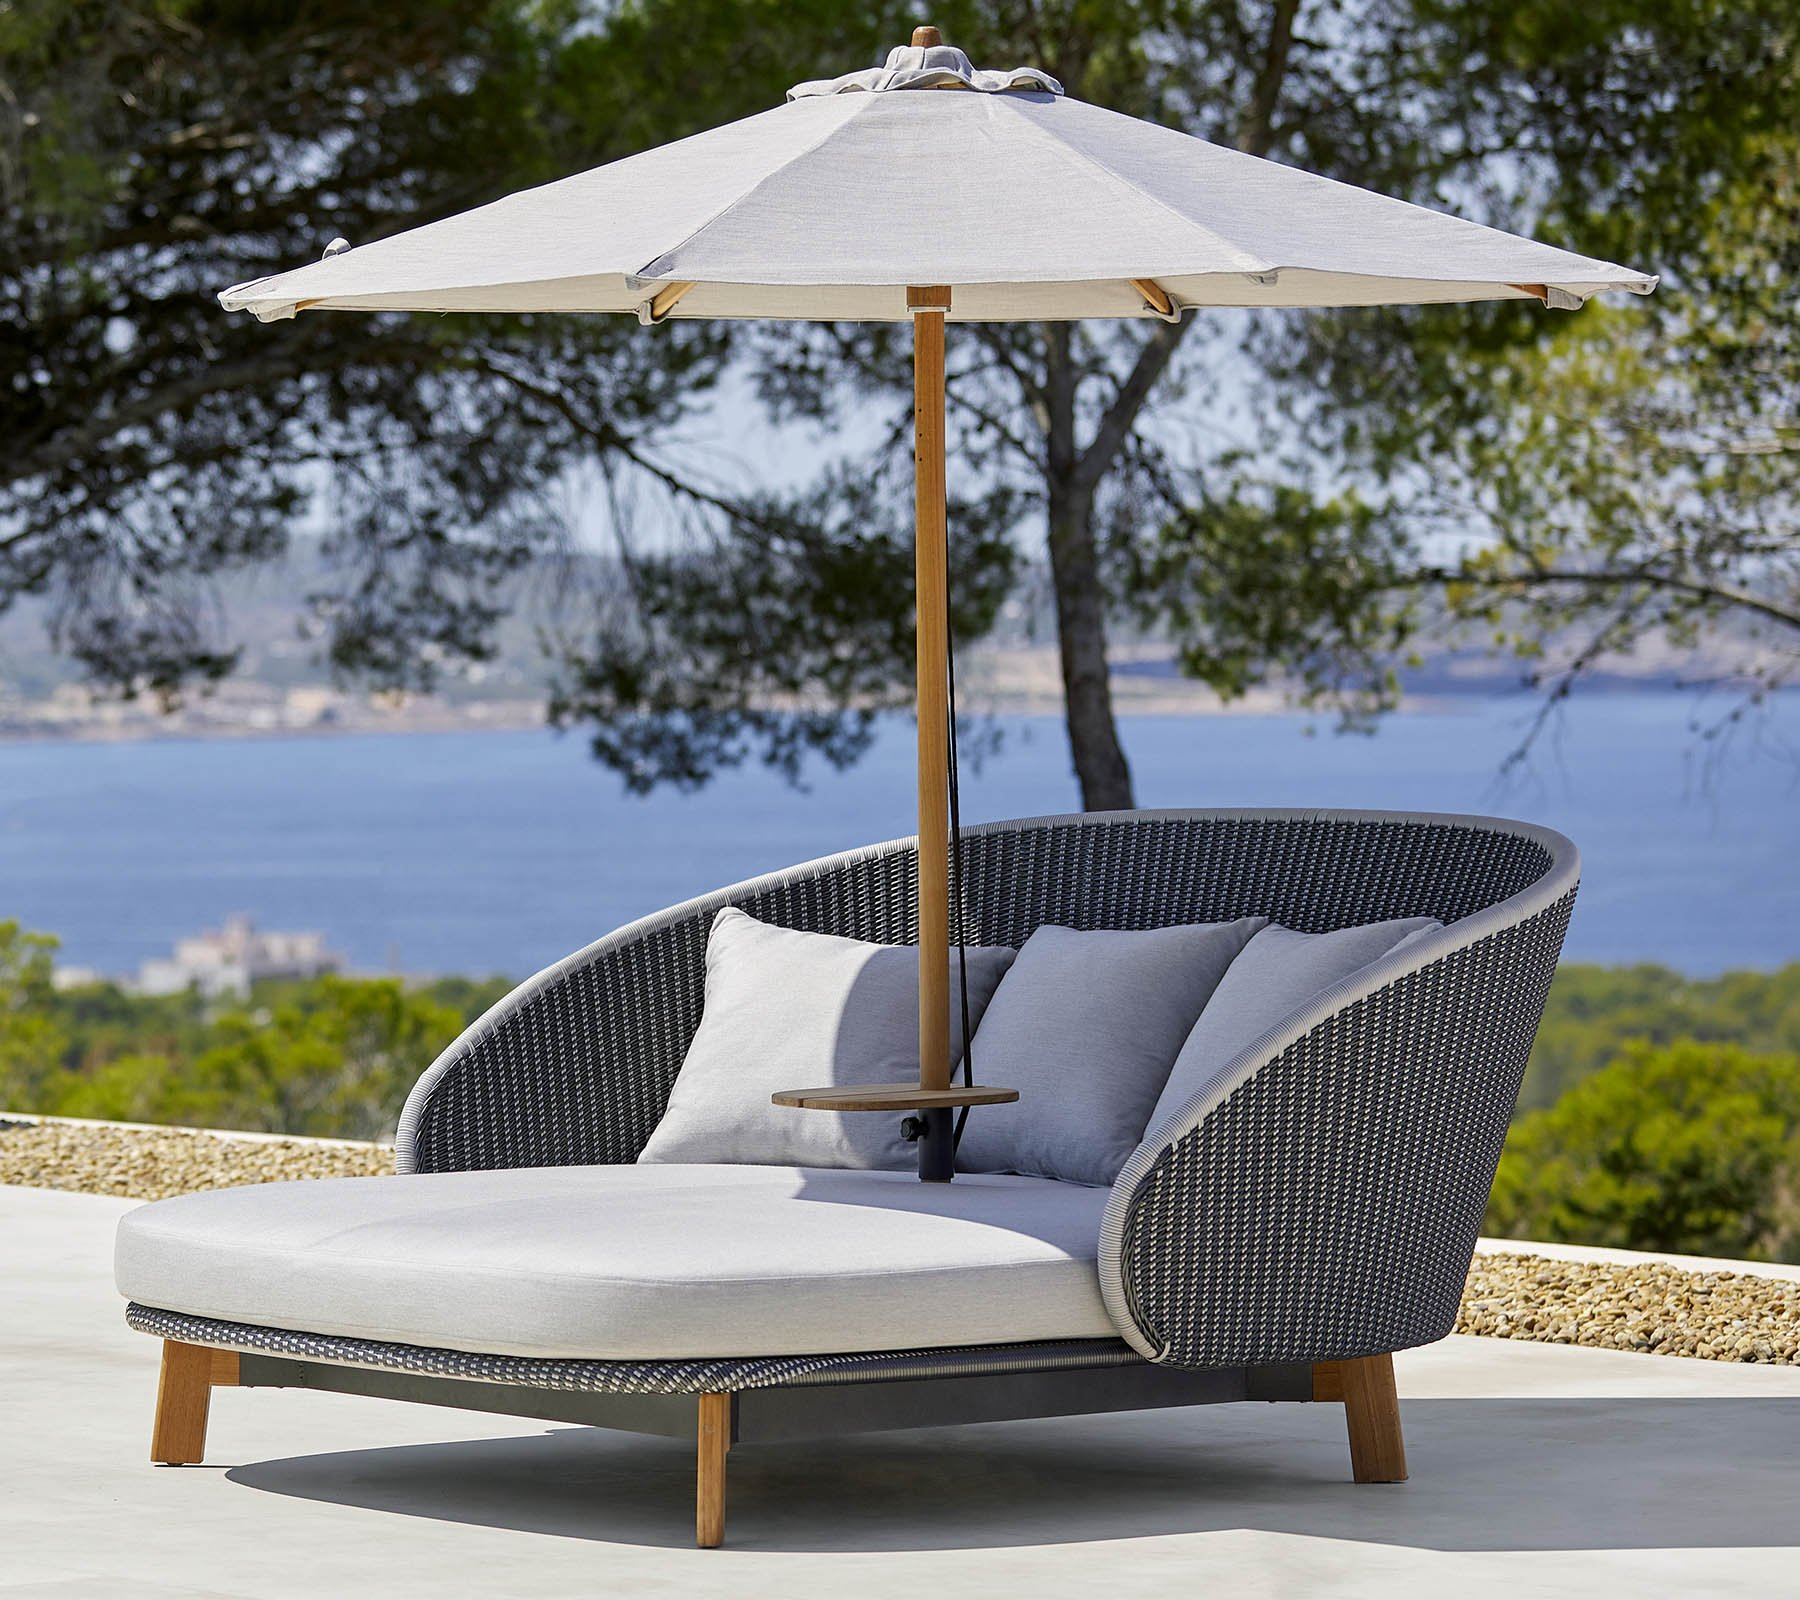 - Peacock Daybed Cane-Line Wohnkultur-cane-line